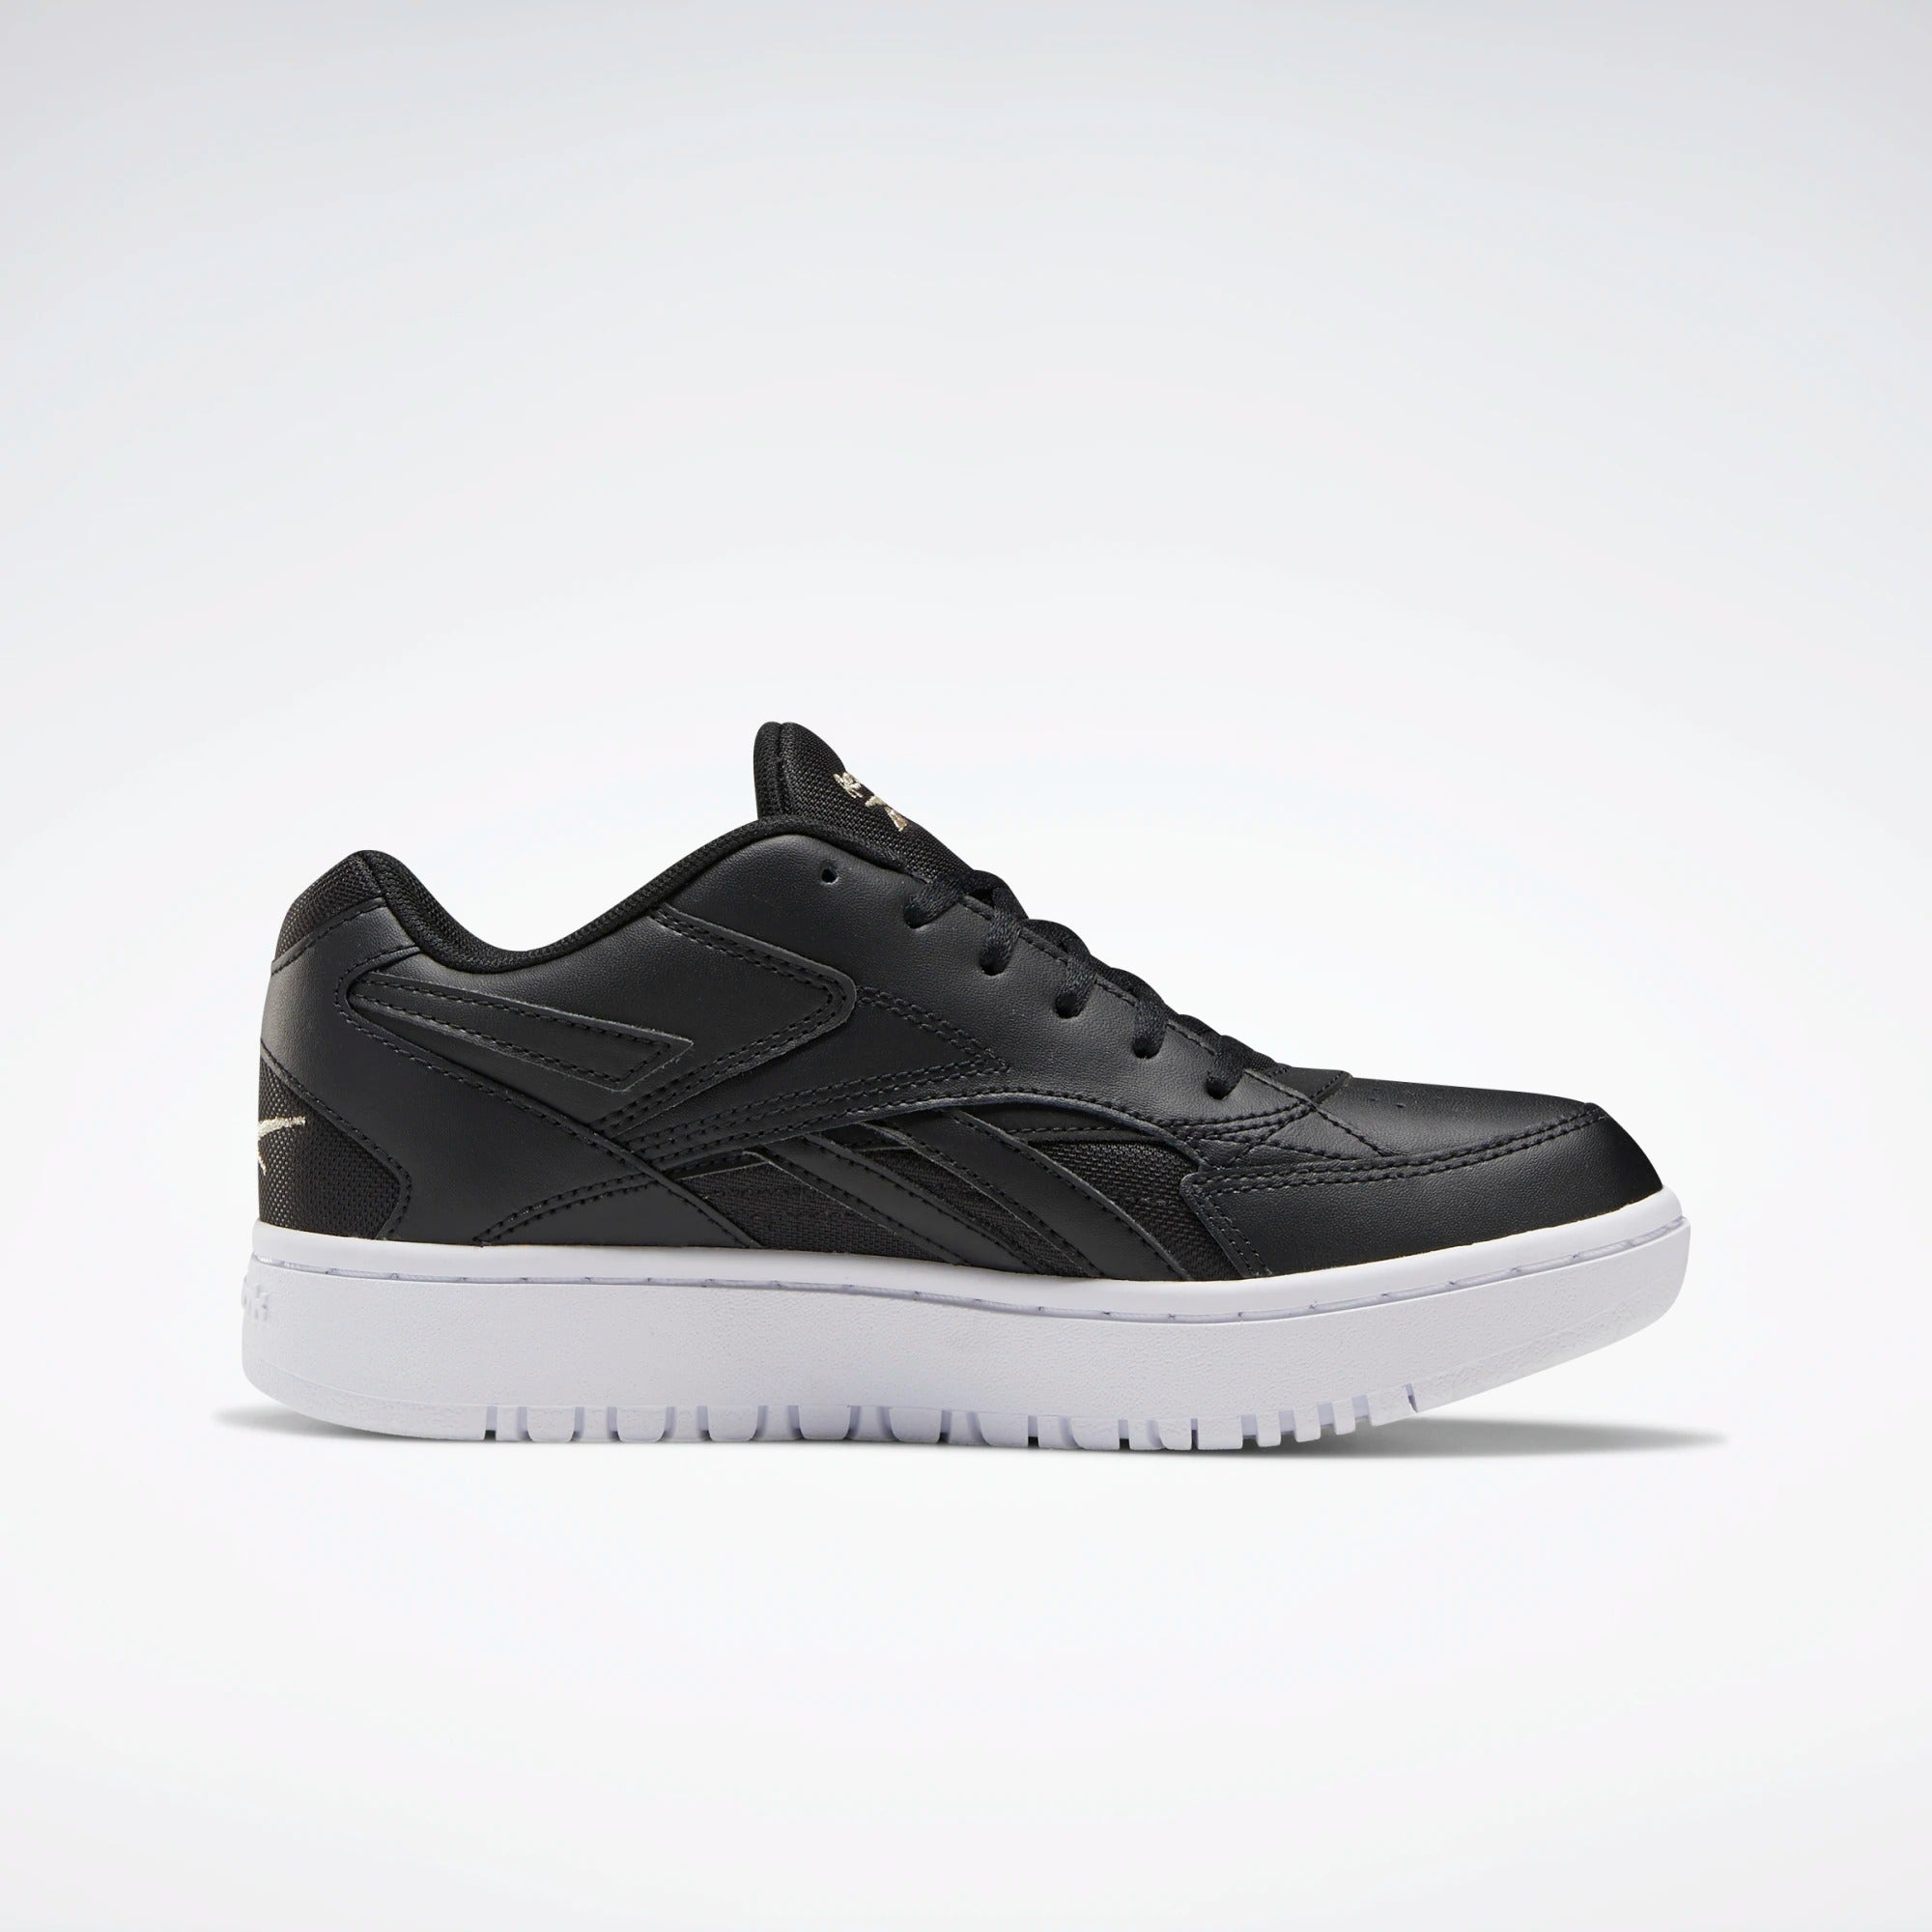 Reebok Court Double Mix Shoes - Black | Shop Reebok at GOALS in Arrowtown, NZ